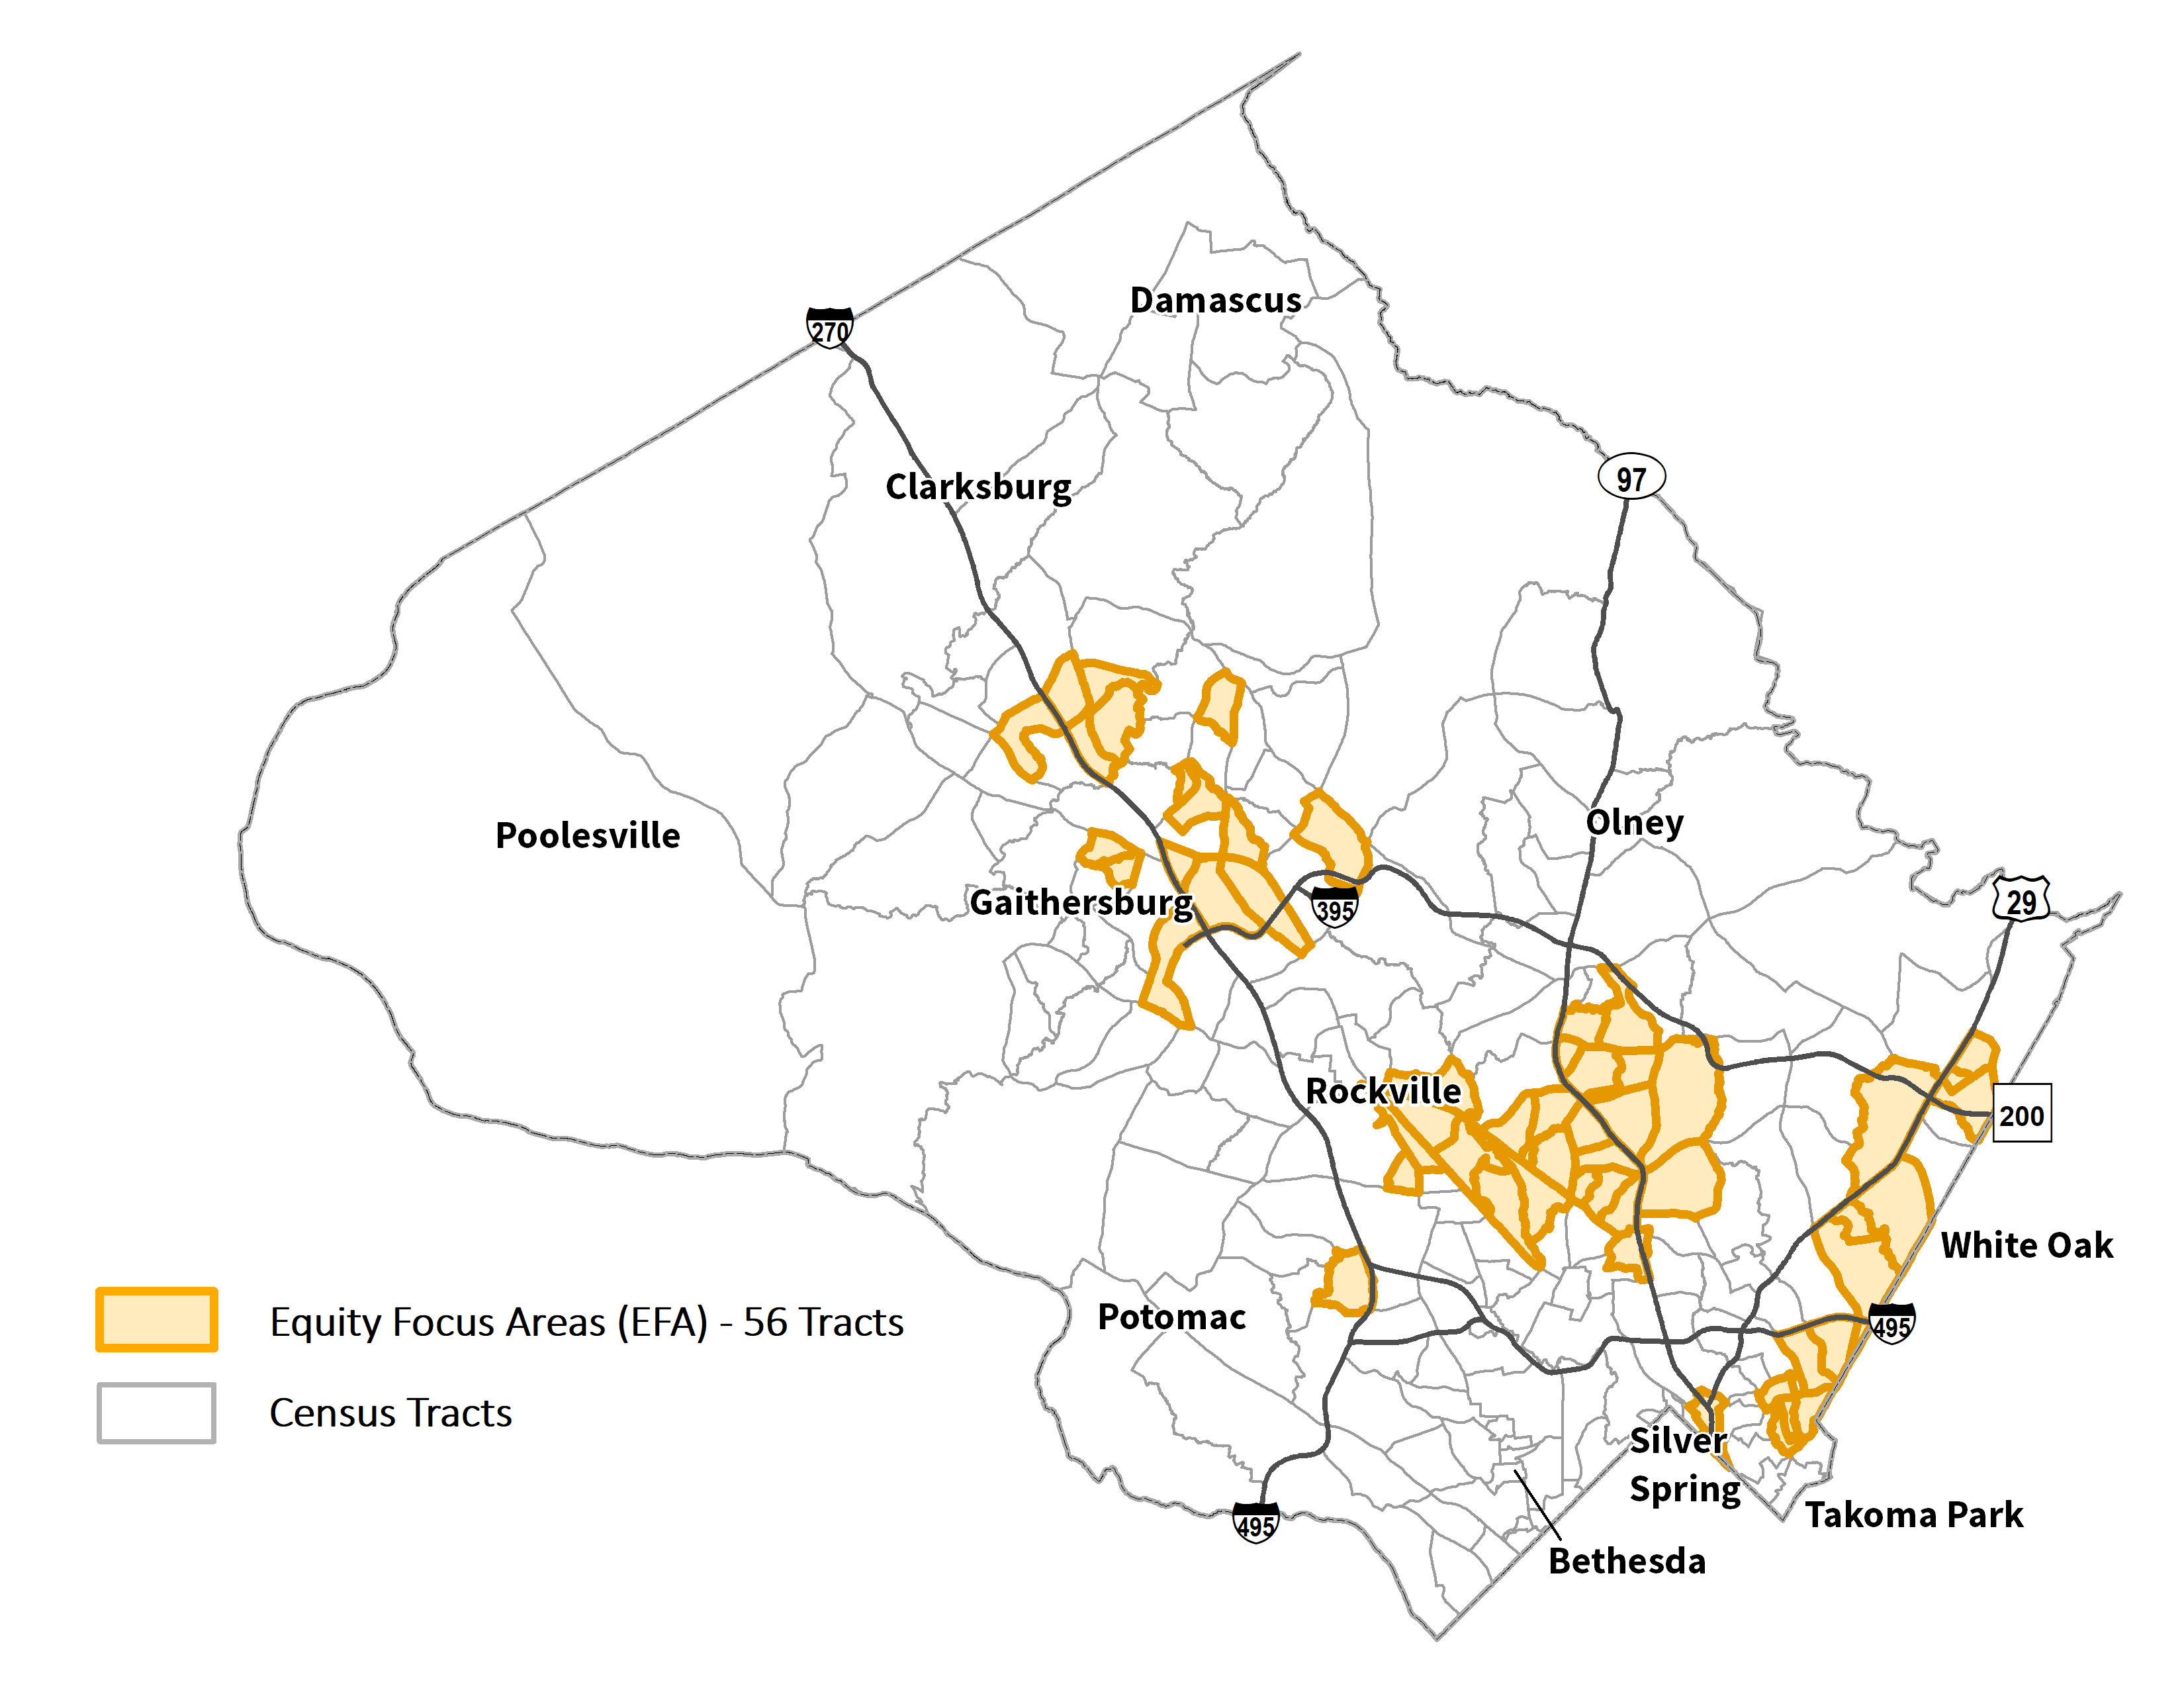 Map of Equity Focus Areas. These areas are primarily found along the I-270 Corridor, the Route 29 Corridor, and the eastern portion of Down County.